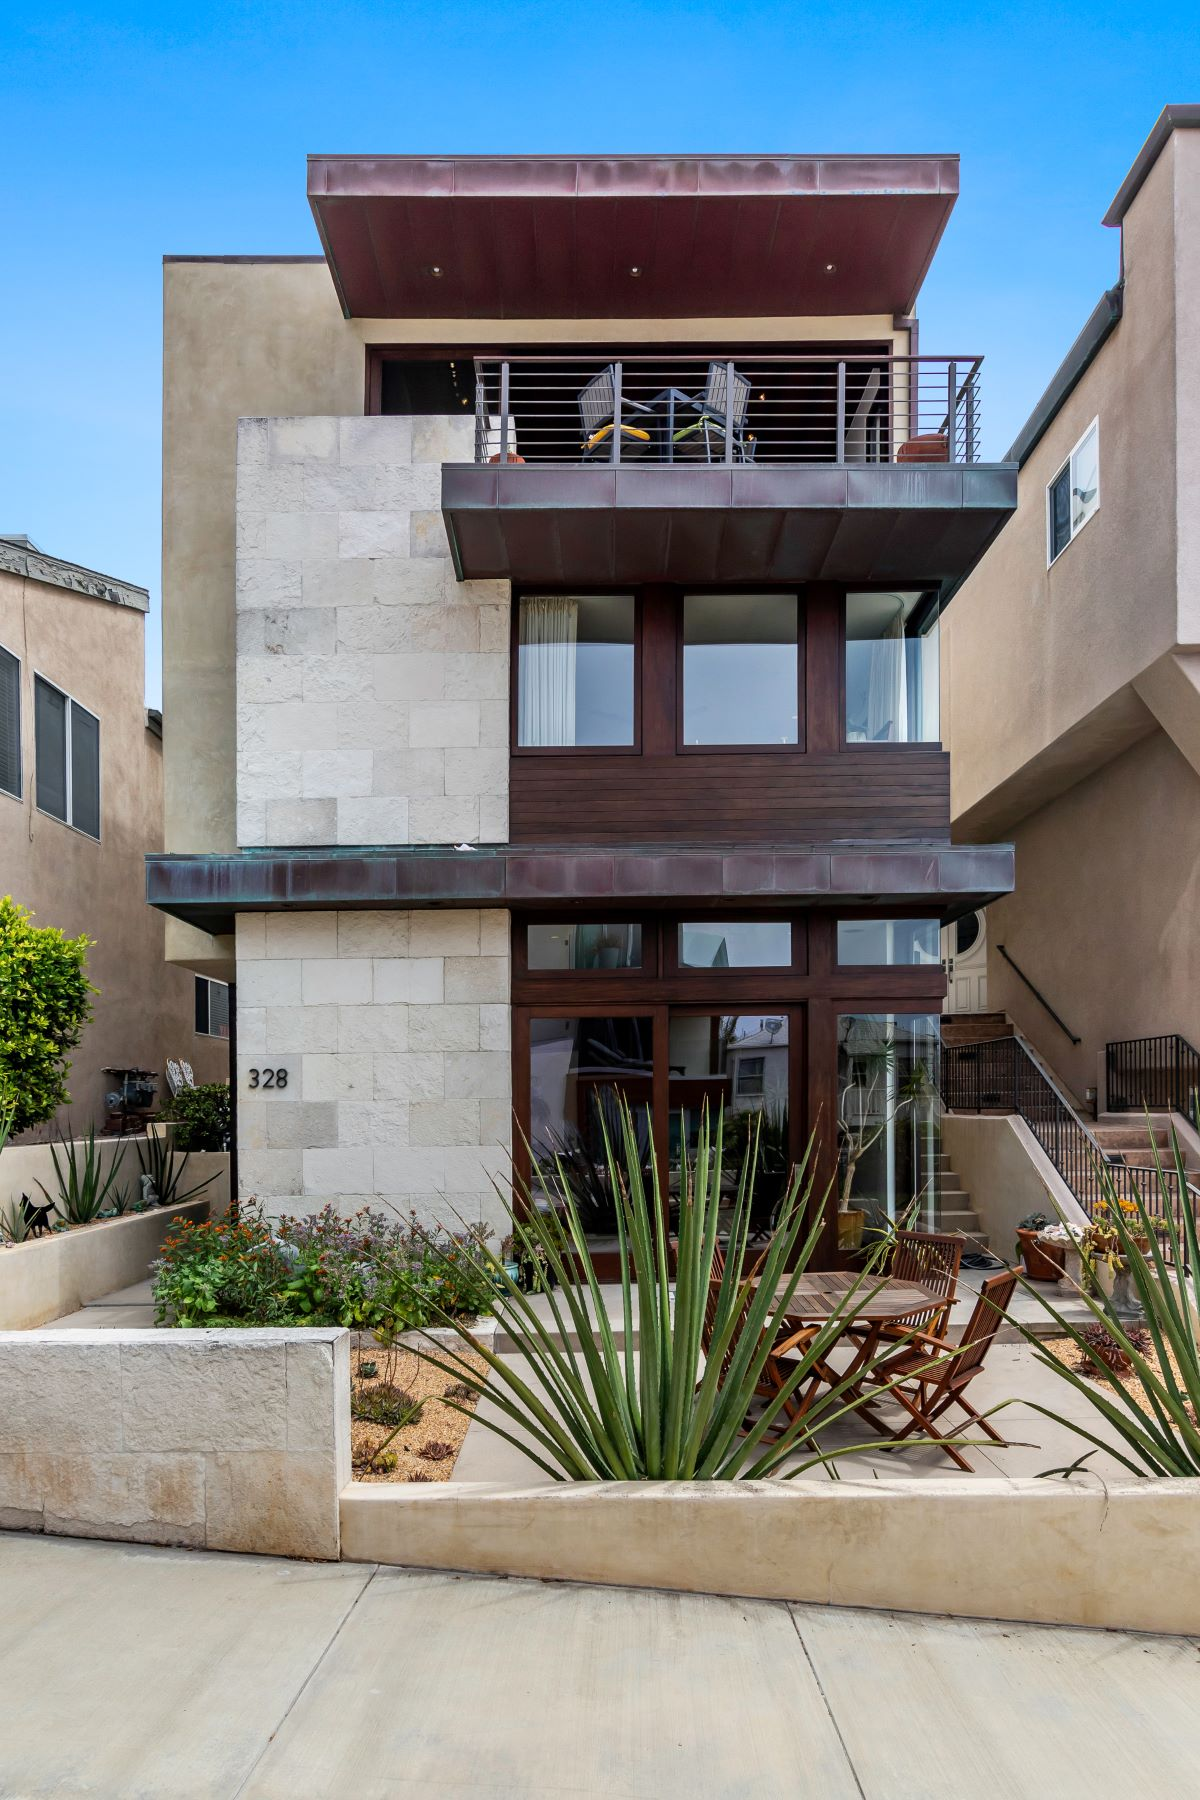 Single Family Homes for Sale at 328 19th Street, Manhattan Beach, CA 90266 328 19th Street Manhattan Beach, California 90266 United States